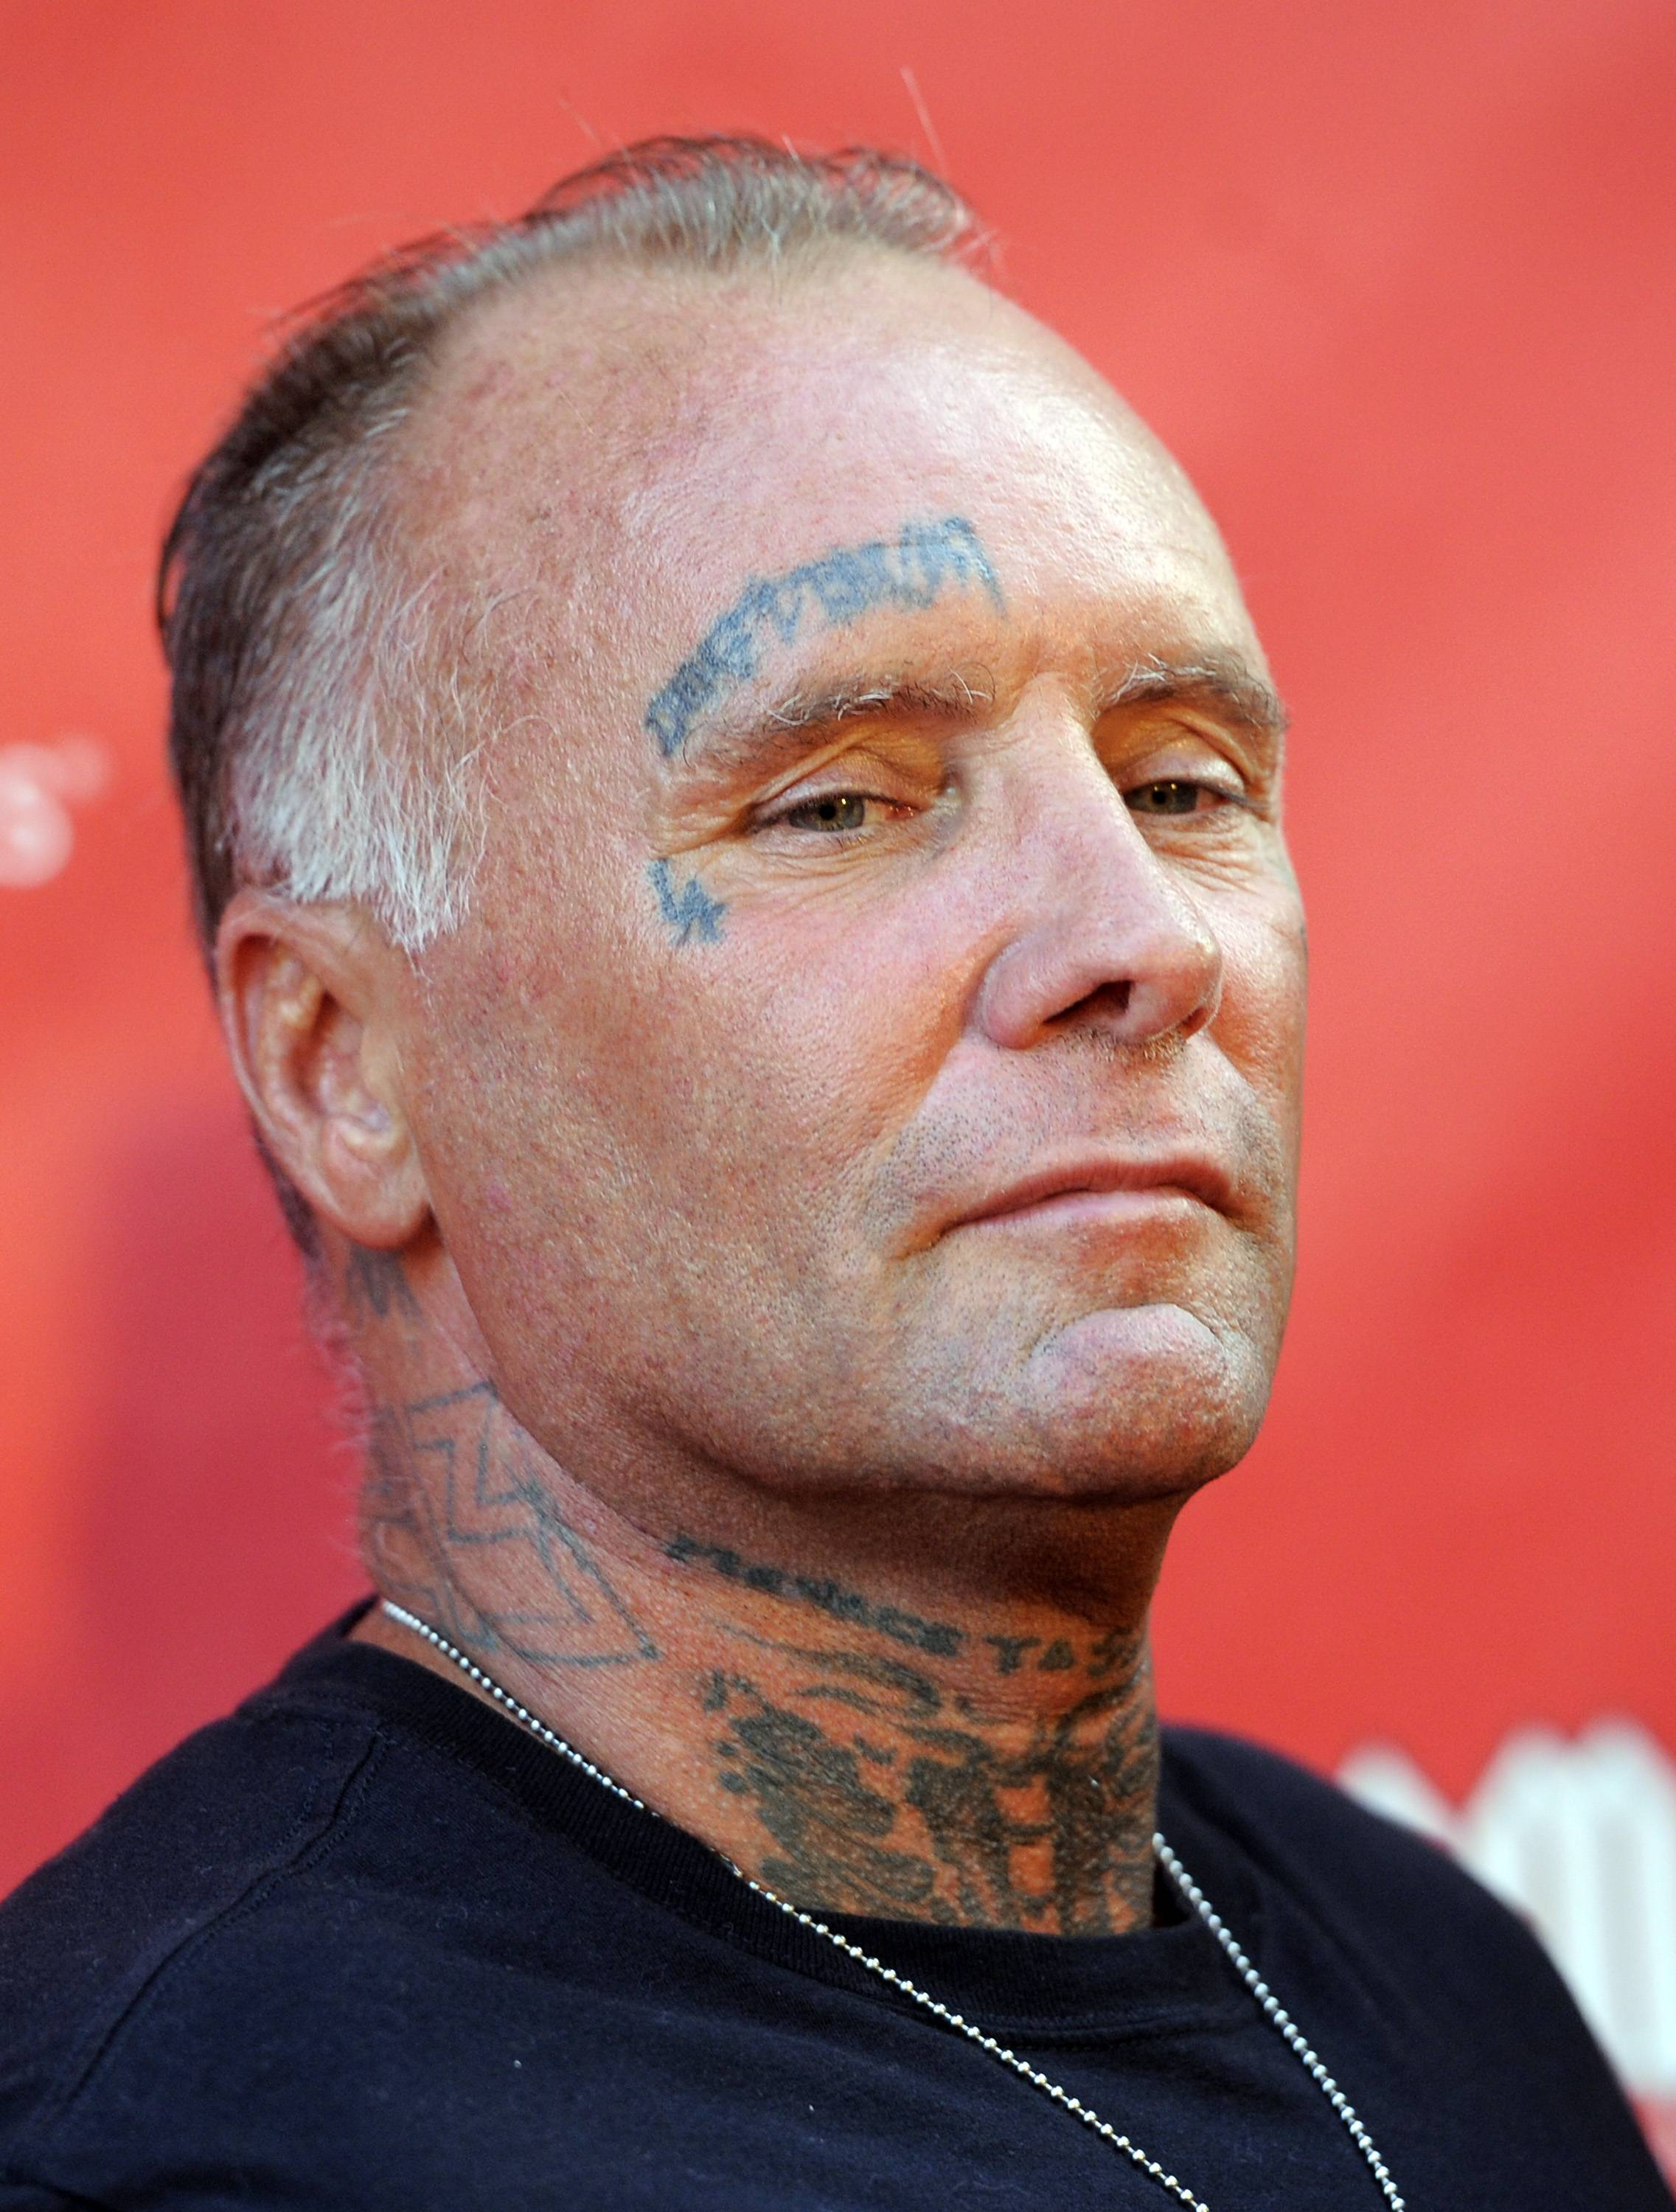 Skateboard legend Jay Adams